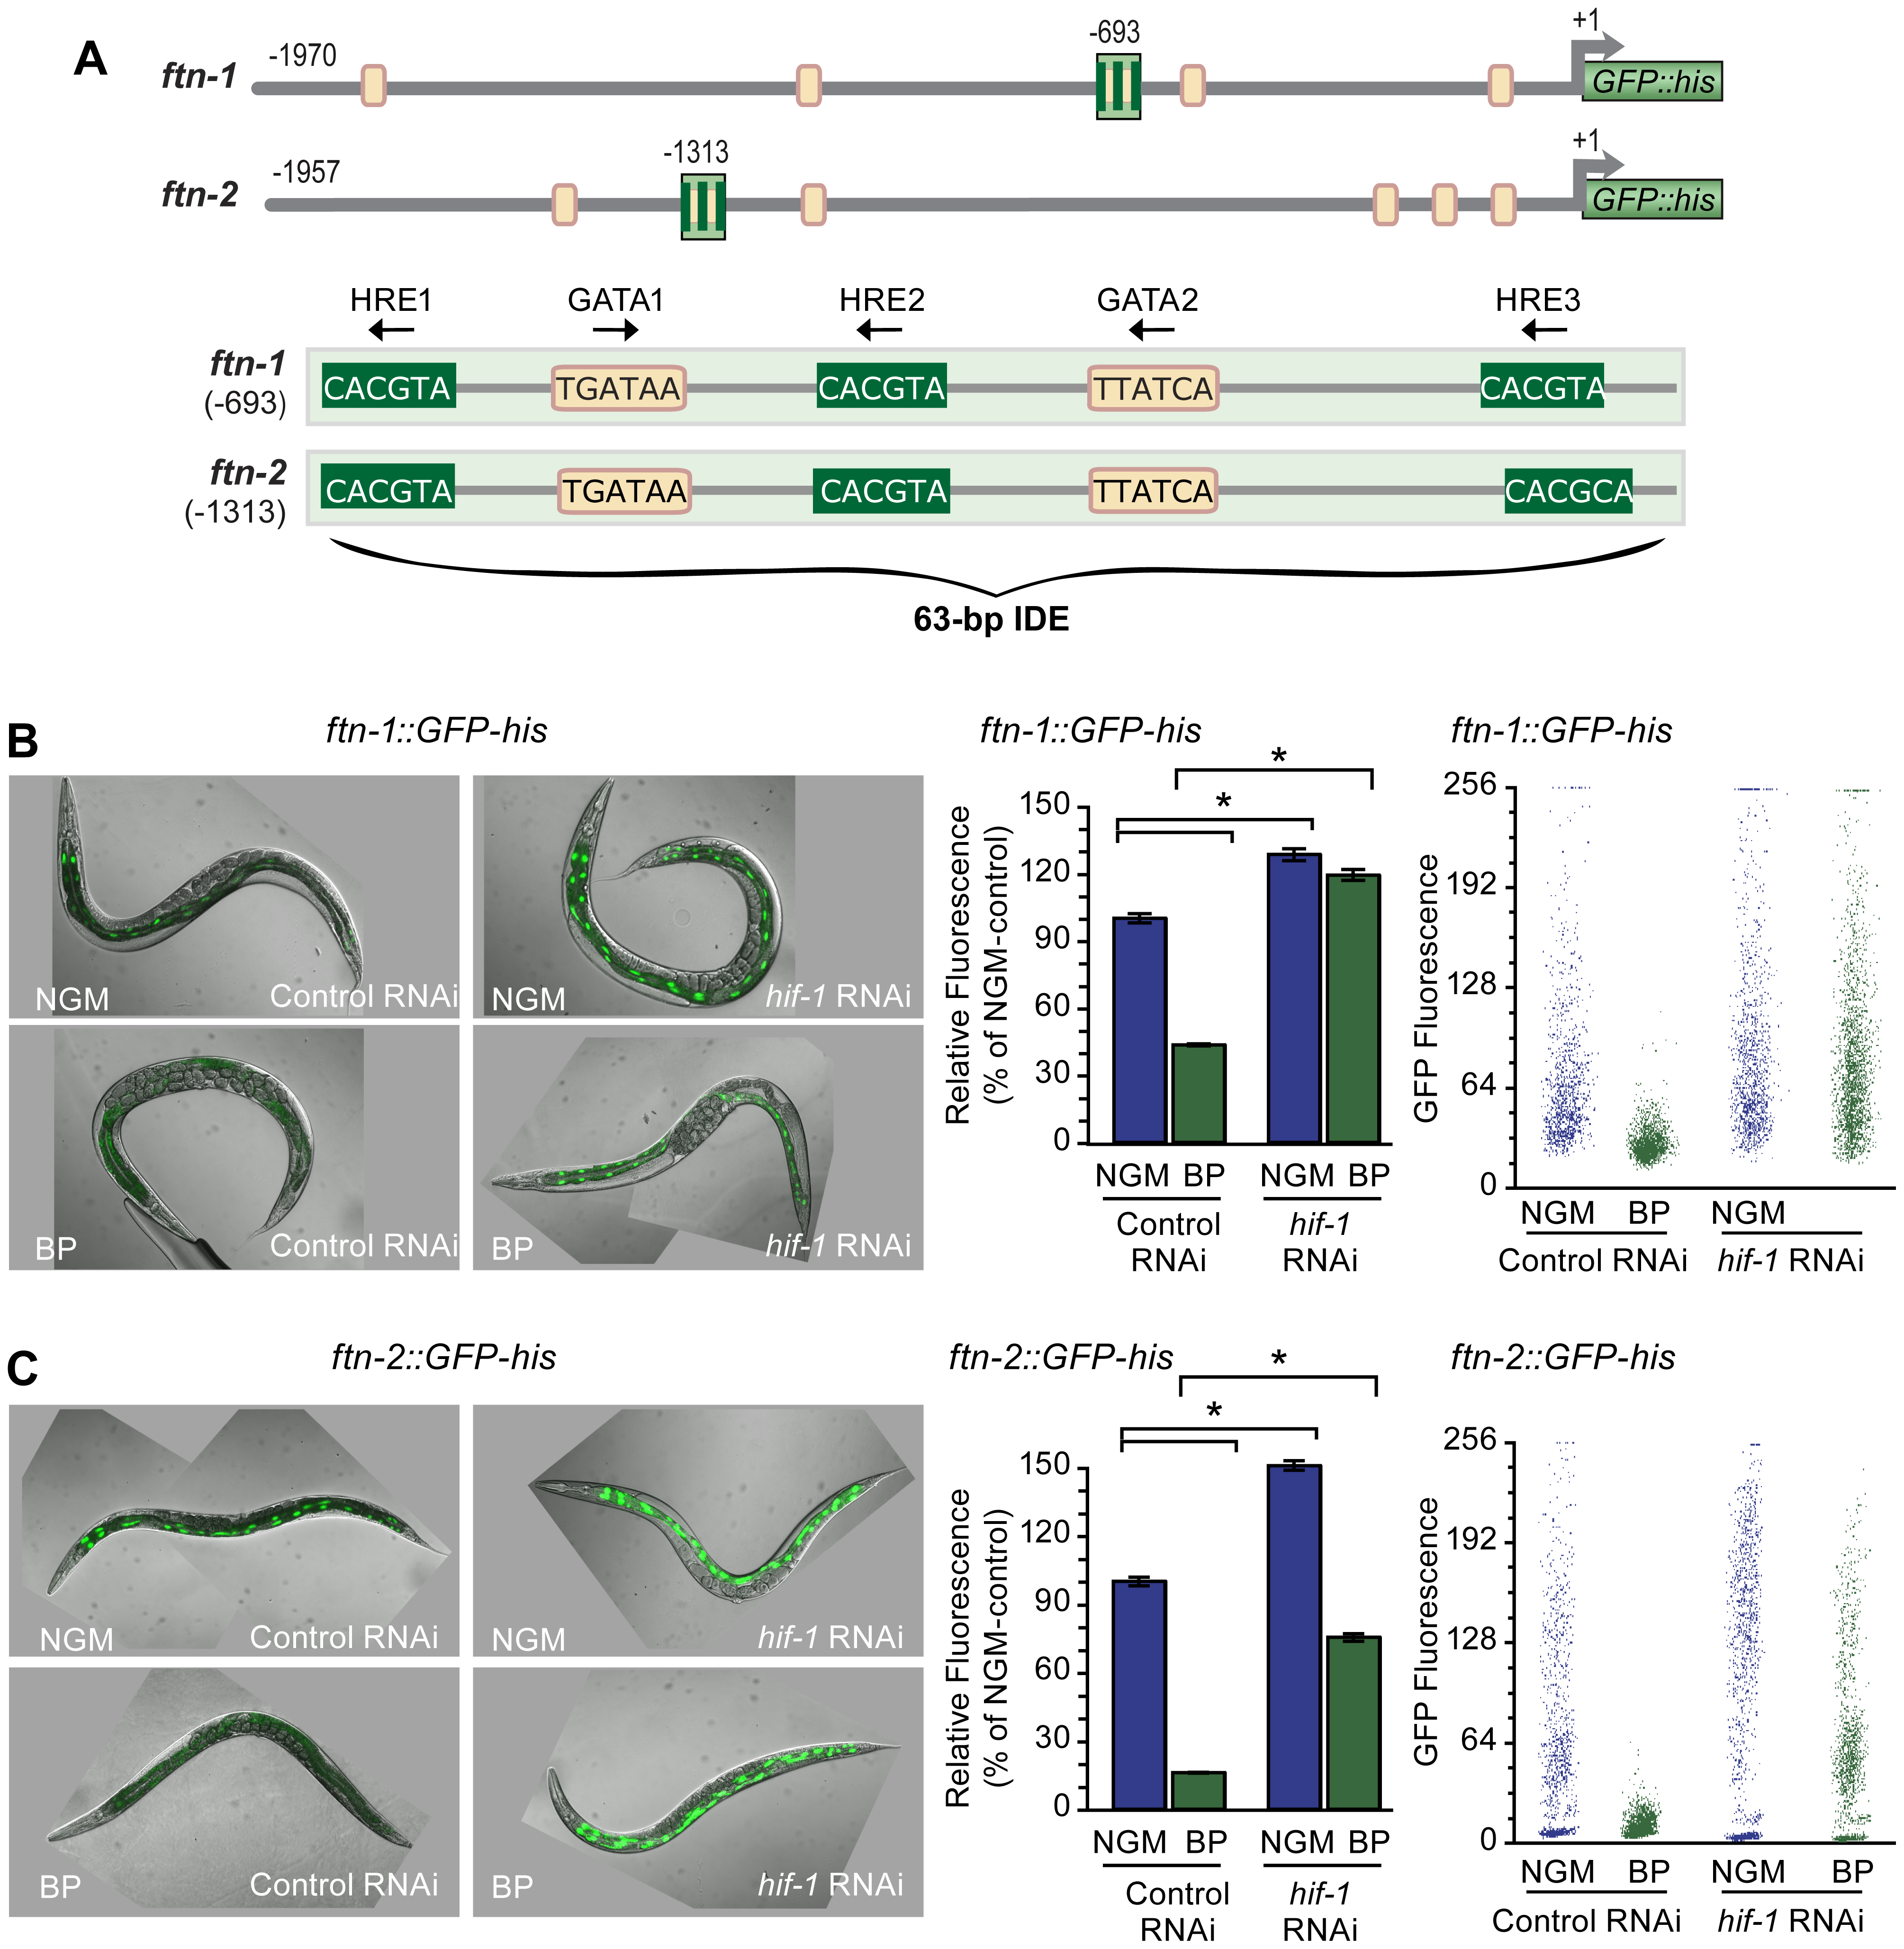 HIF-1 is required for <i>ftn-1</i> and <i>ftn-2</i> transcriptional repression during iron deficiency.